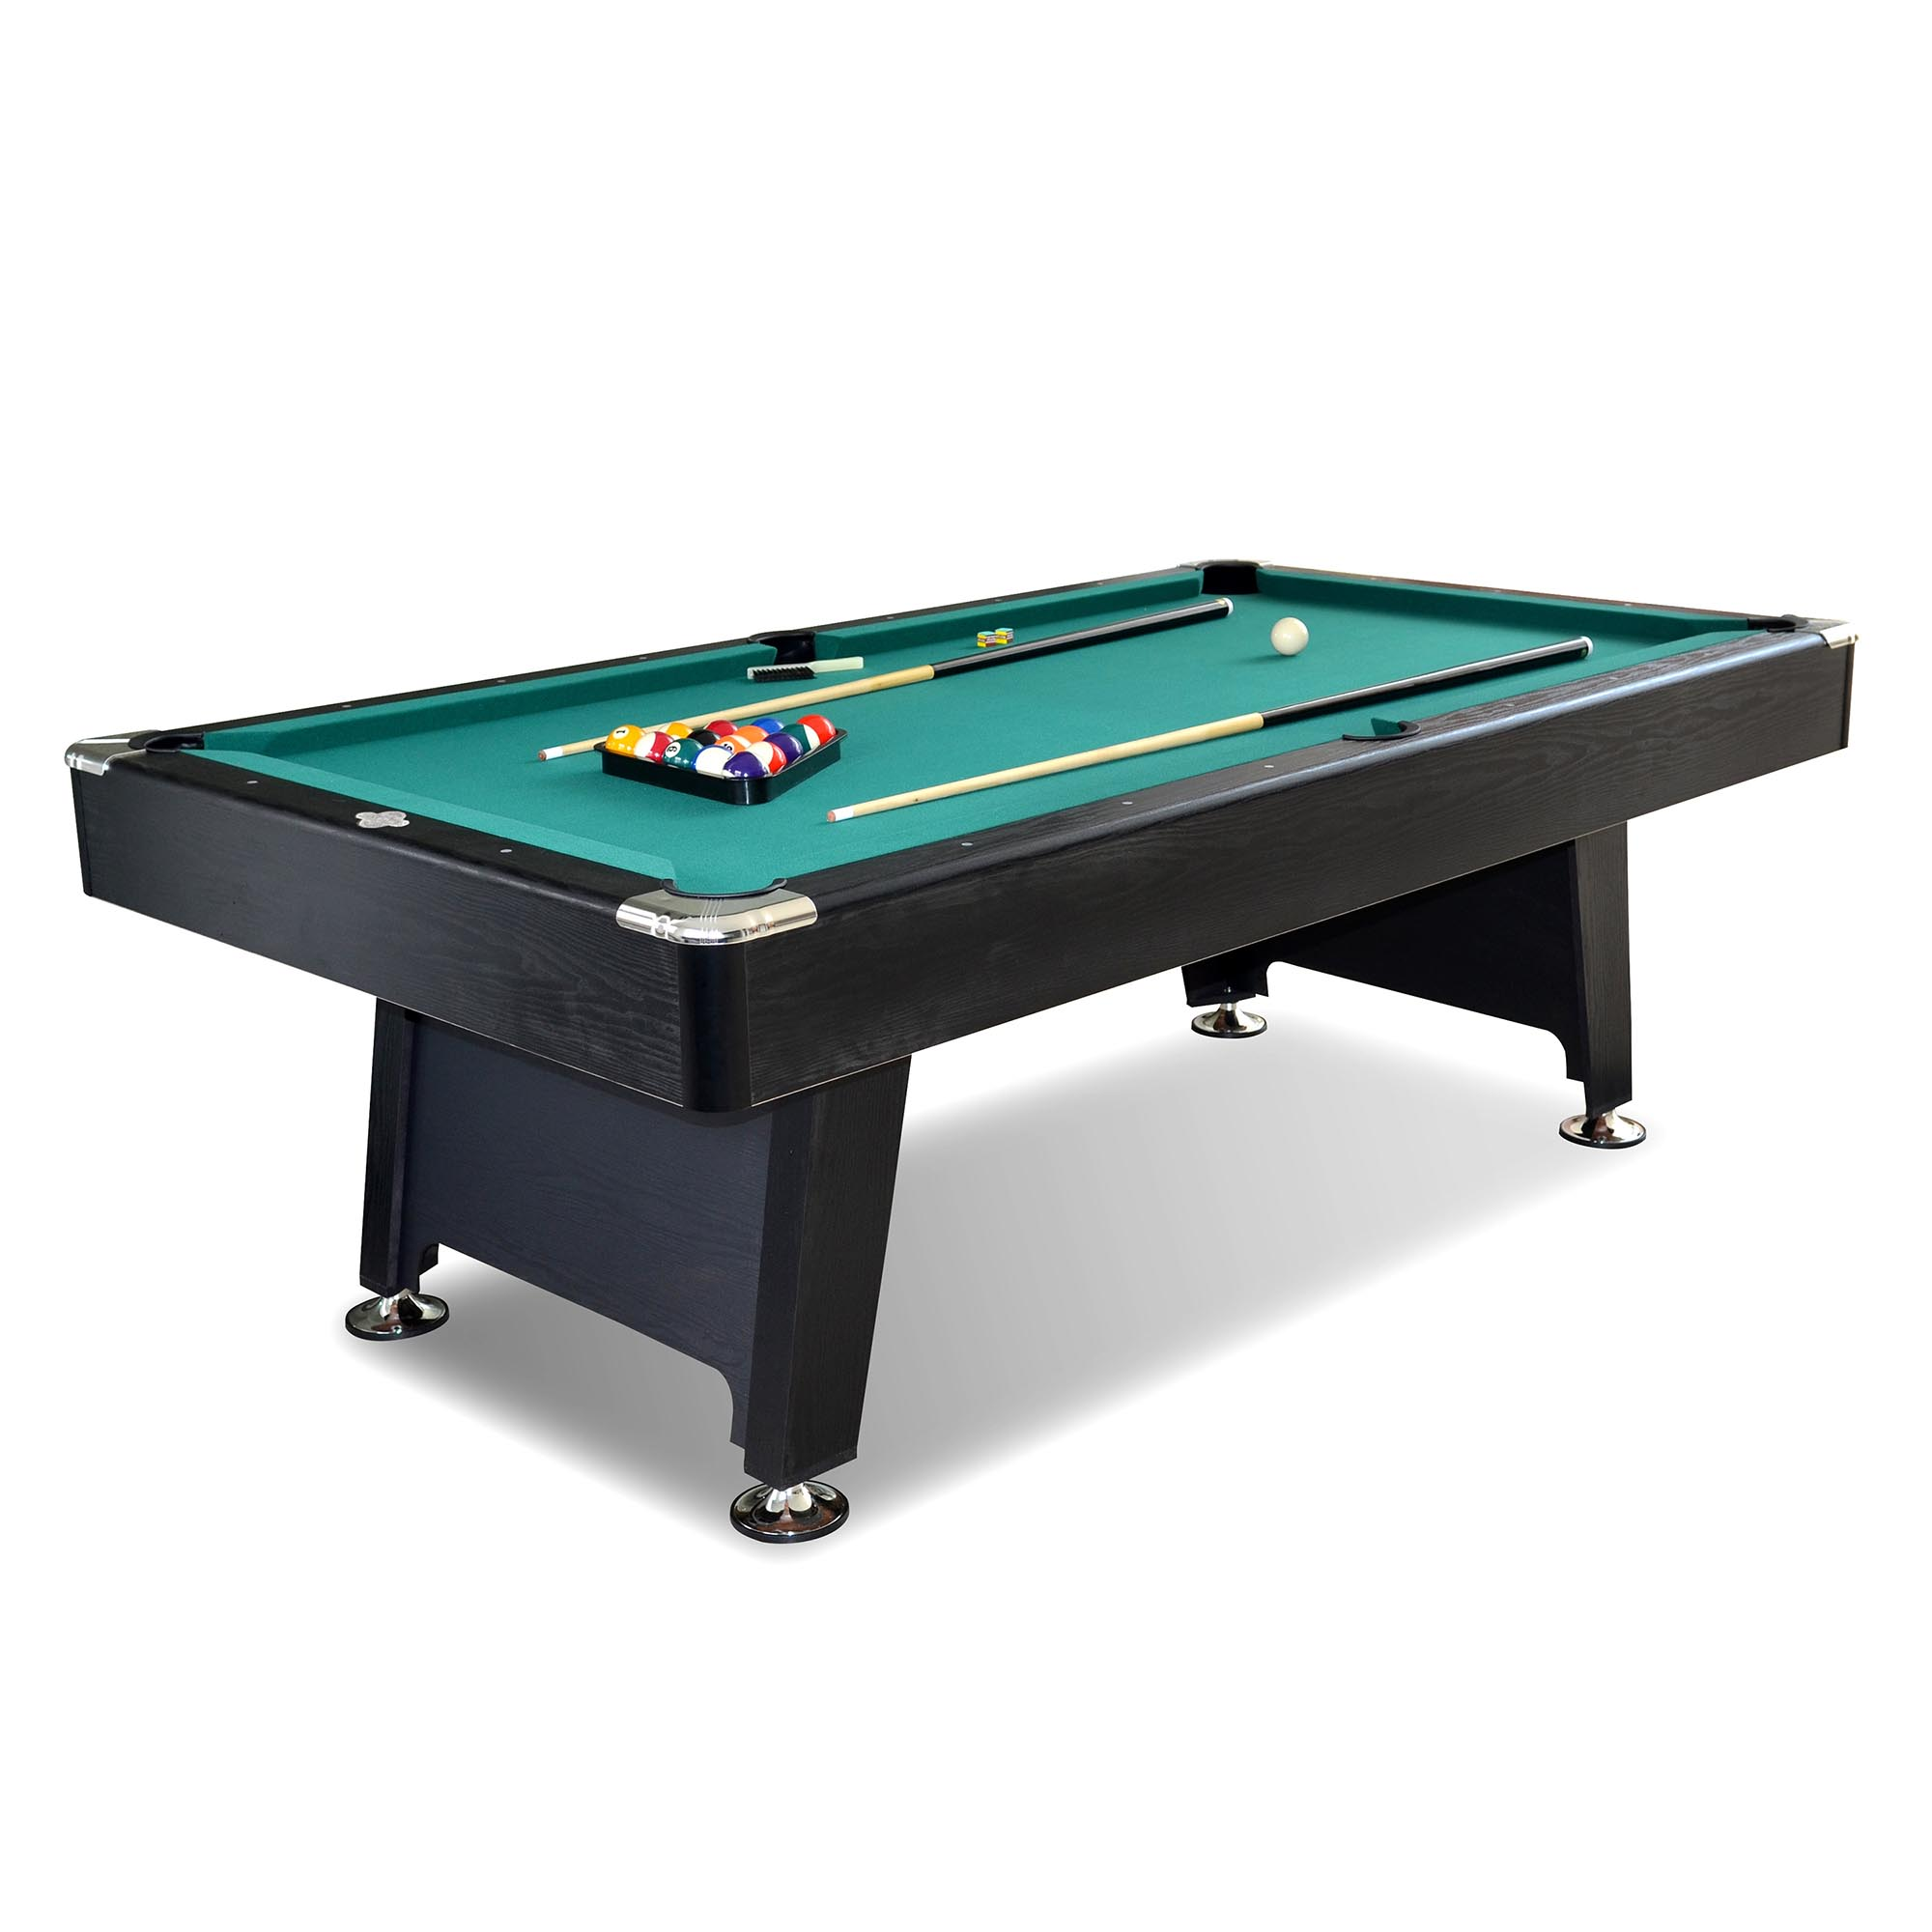 Lancaster 90 Inch Arcade Game Room Billiard Pool Table with Balls